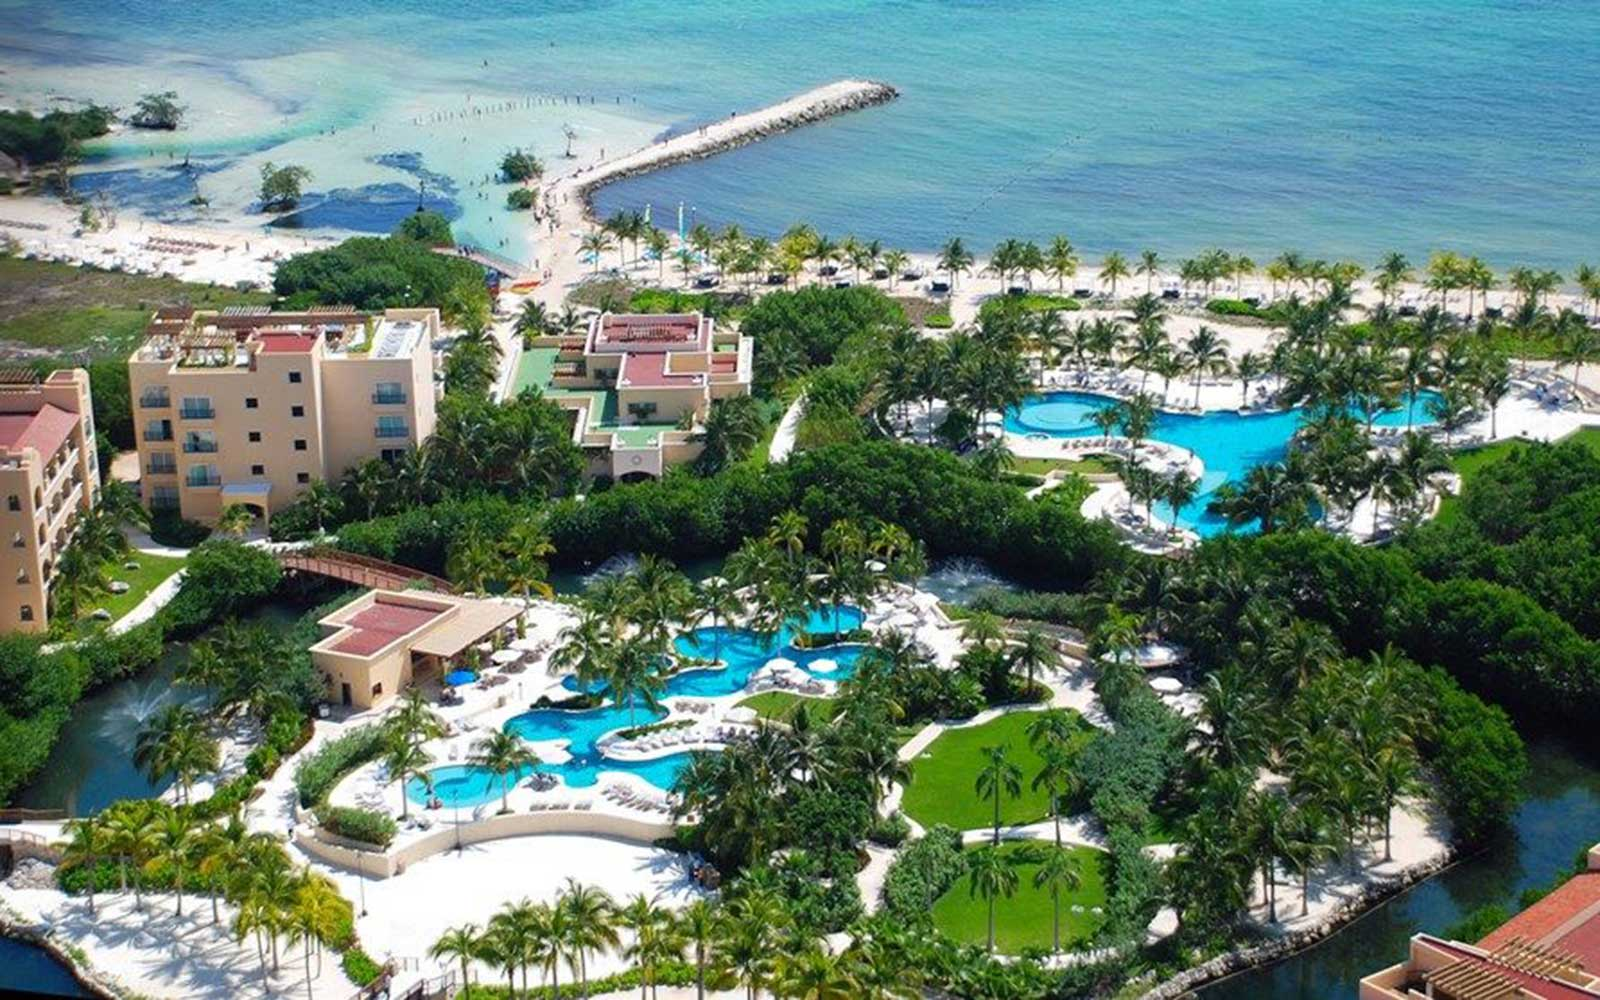 Mexico's Greenest Hotels Offer Guests a Certain 'Om'-biance: Hacienda Tres Ríos in Riviera Maya